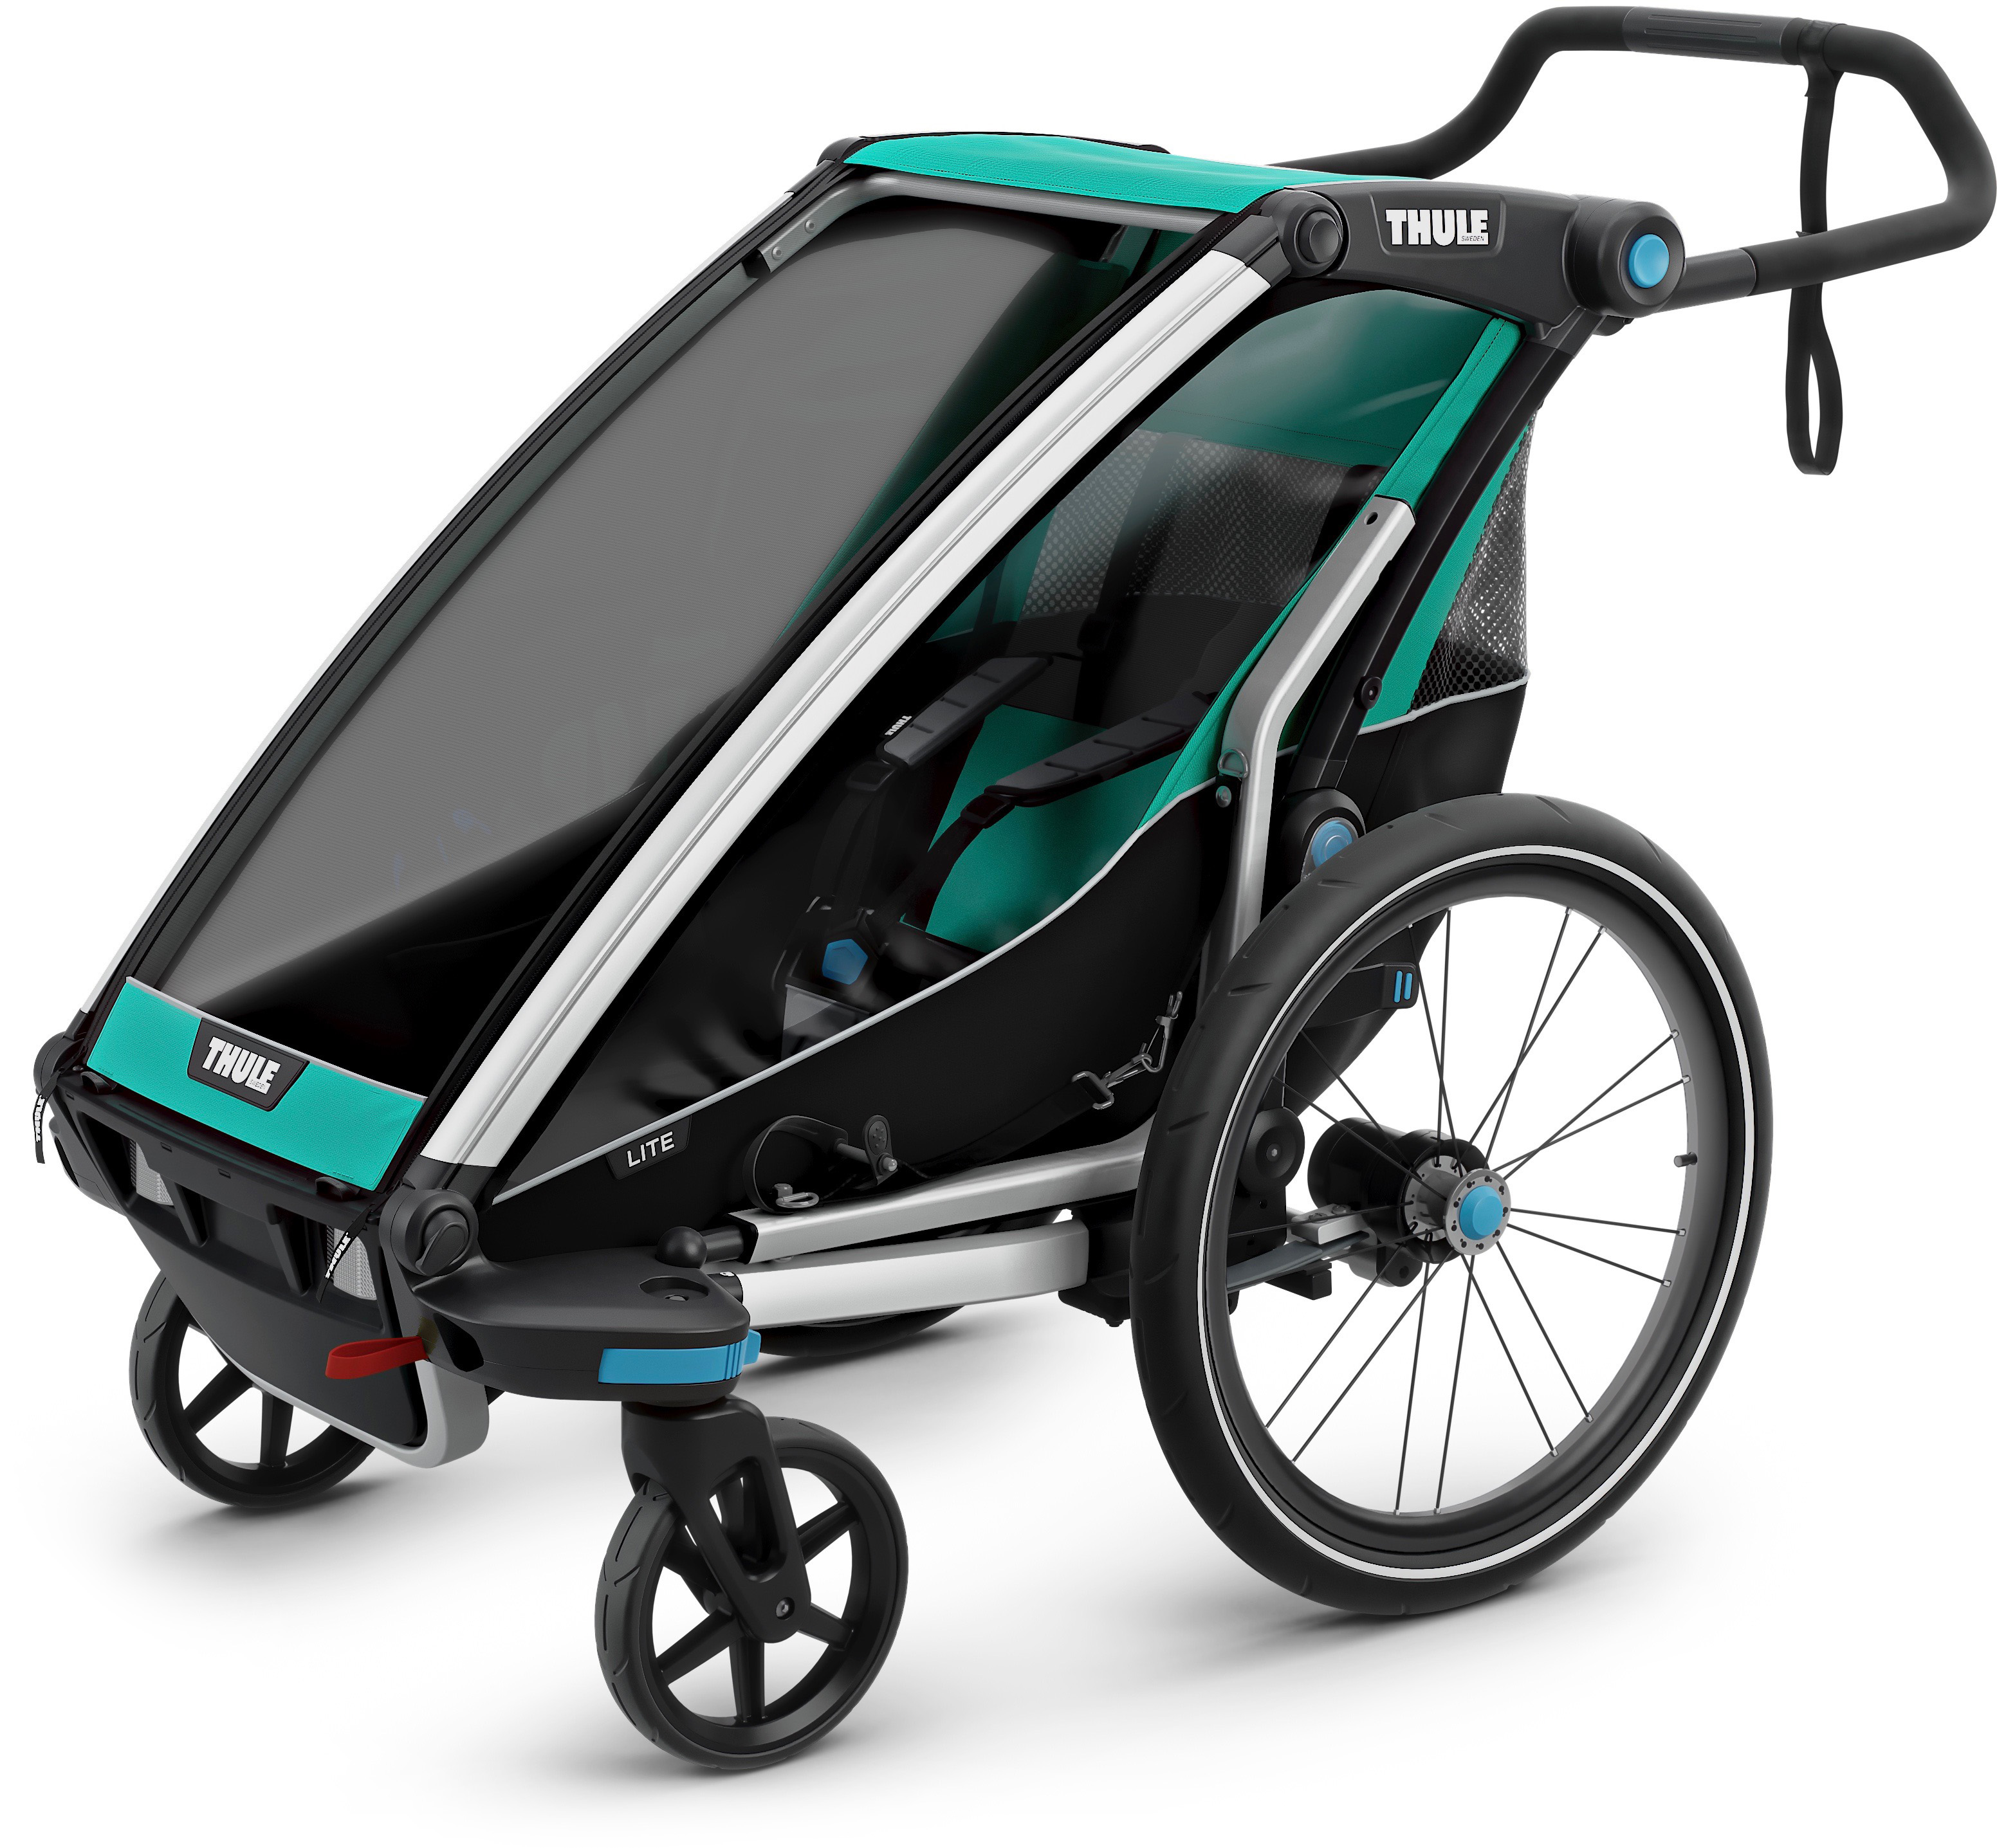 Thule Chariot Lite 1 Child Trailer | bike_trailers_component